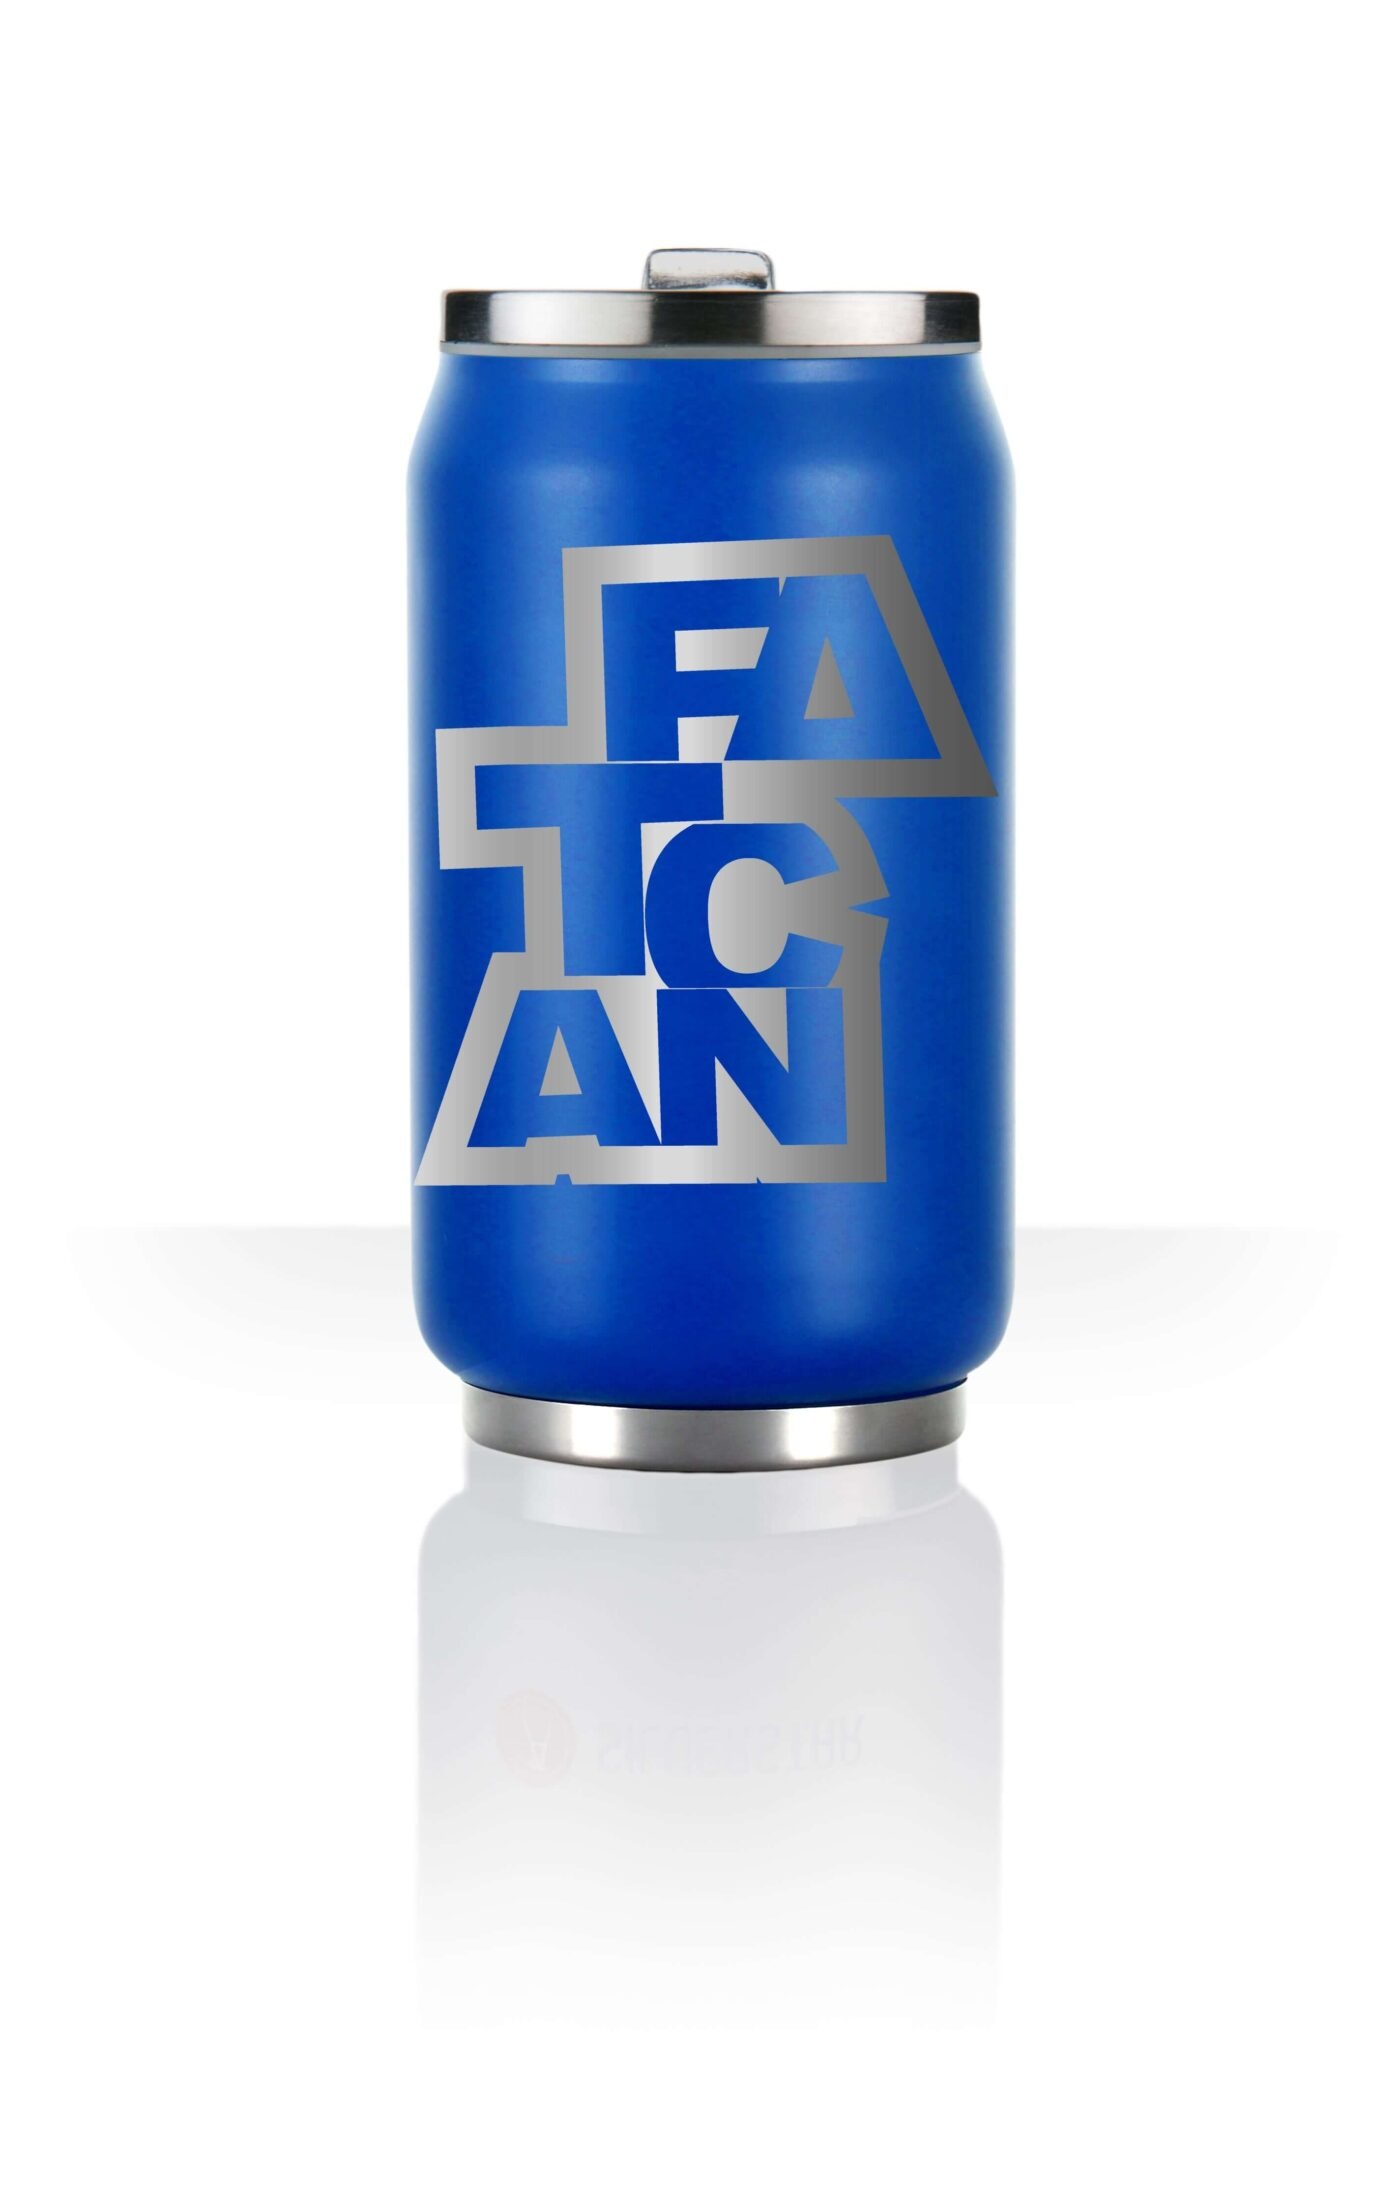 FATCAN_blueberry_matt_025